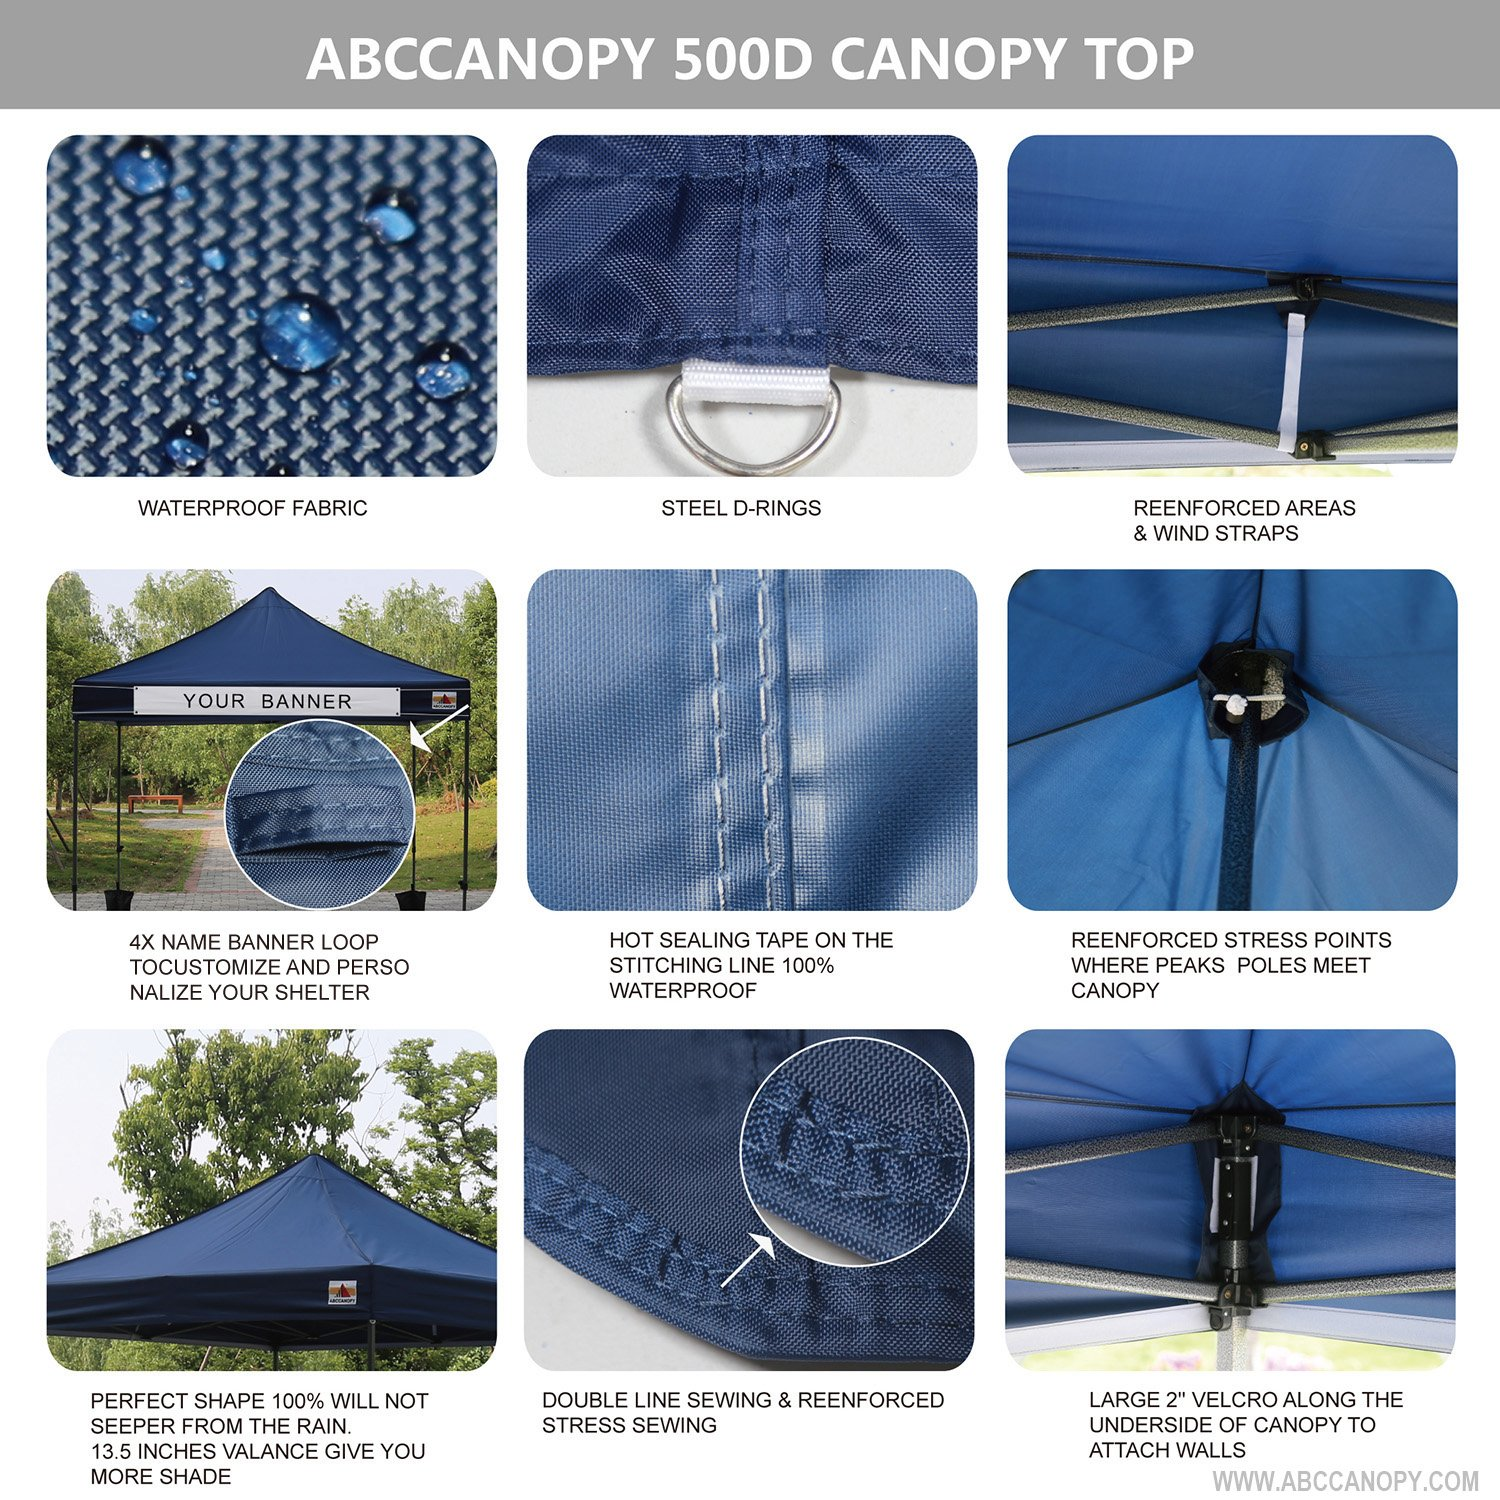 AbcCanopy Commercial 10x10 Instant Canopy Craft Display Tent Portable Booth Market Stall with Wheeled Carry Bag & Full Walls , Bonus 4x Weight Bag & 10ft Screen Wall & 10ft Half Wall (NAVY BLUE) by abccanopy (Image #4)